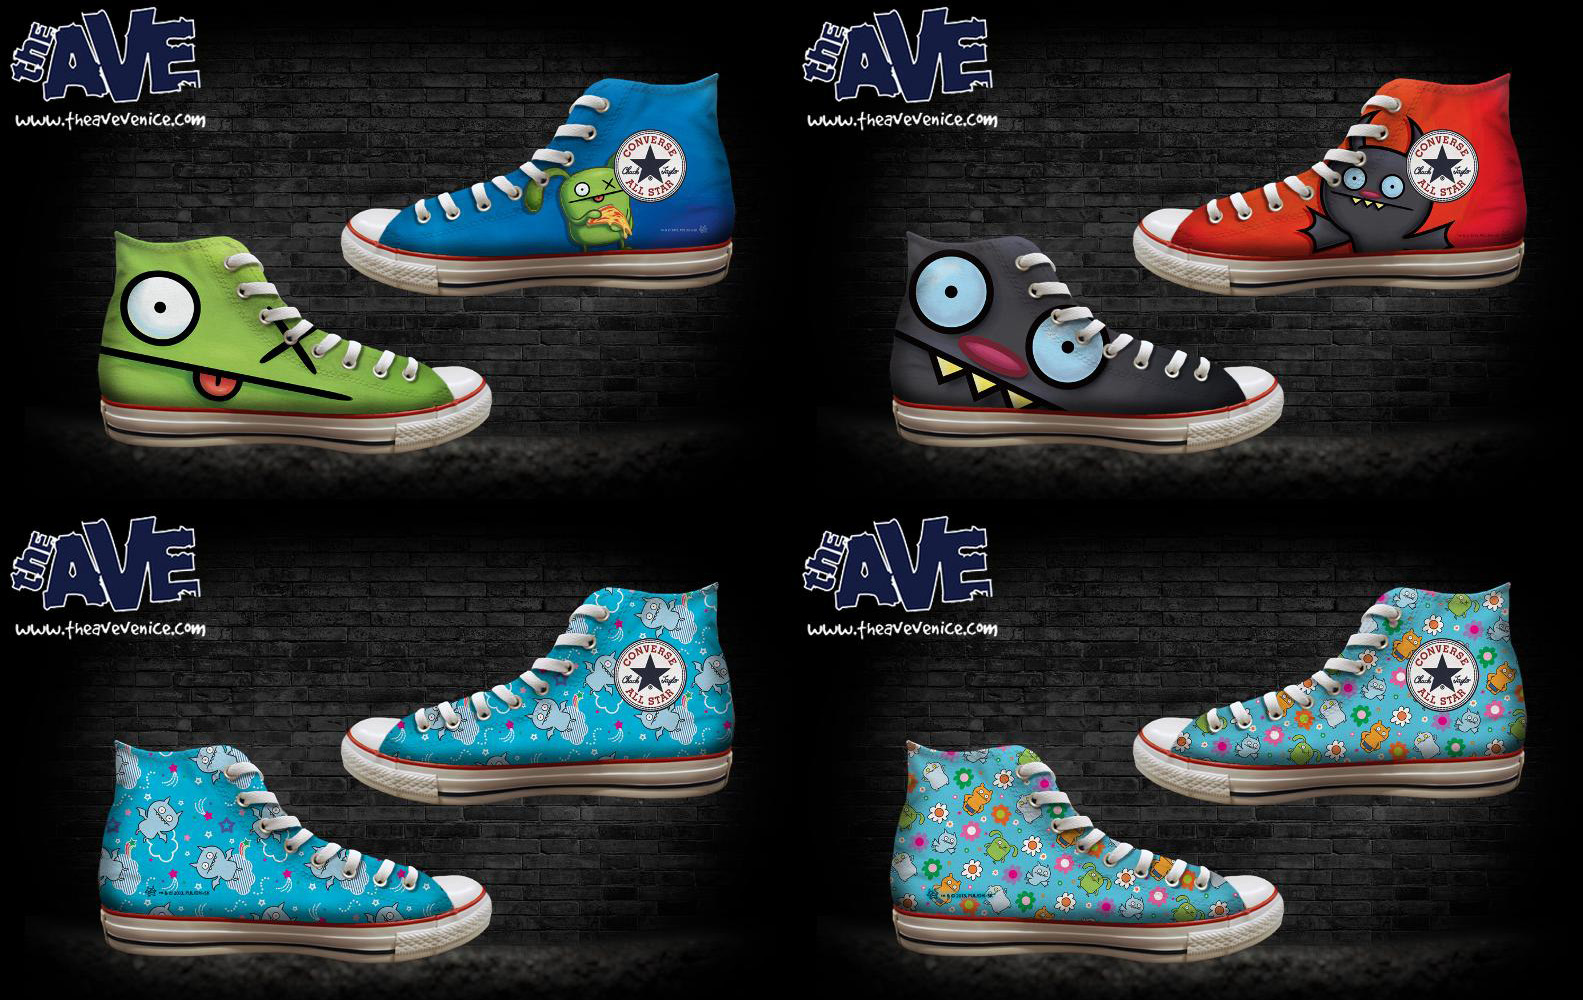 982c154ee2f51 Collecting Toyz: Uglydoll Shoes!